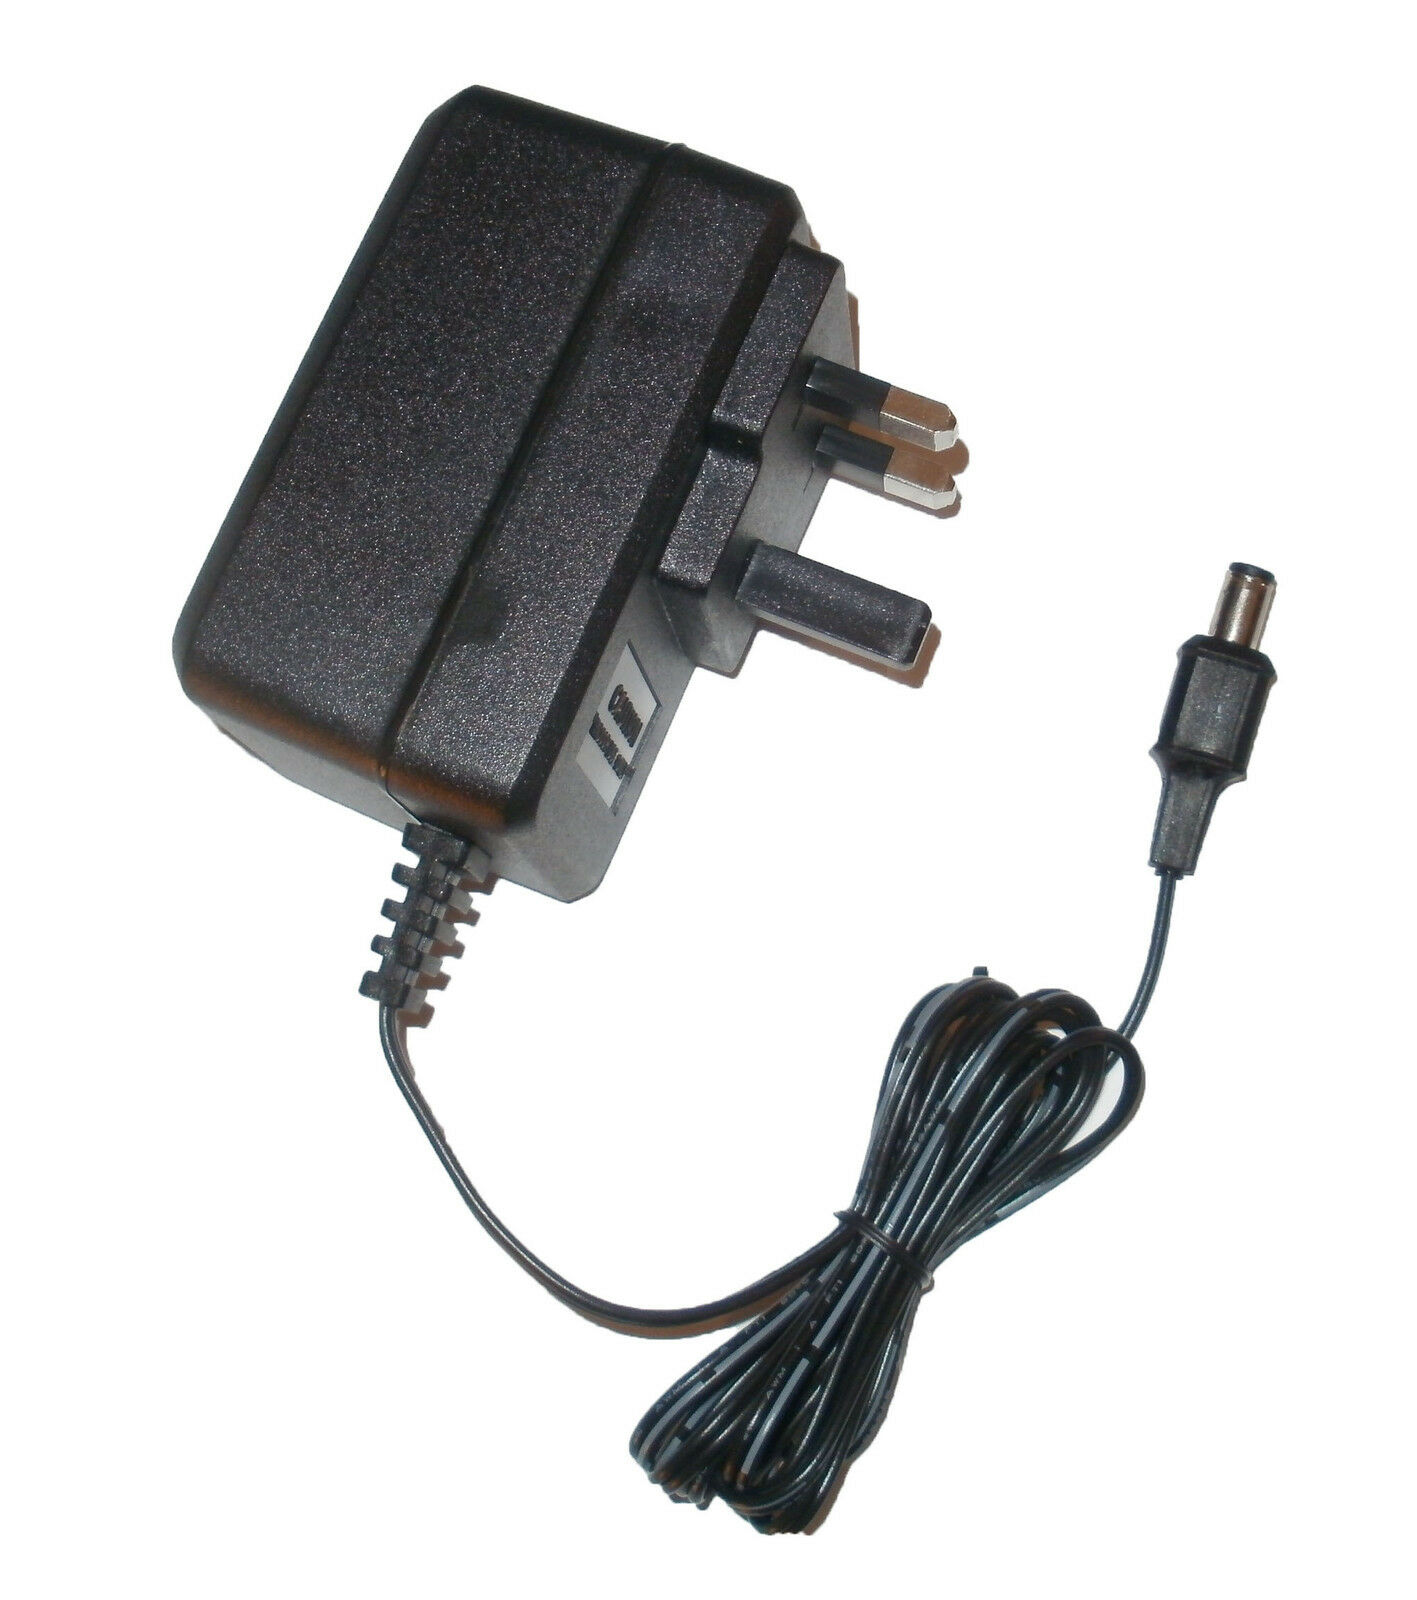 Power Supply Replacement for Digitech Vocal 300 Adapter 9V